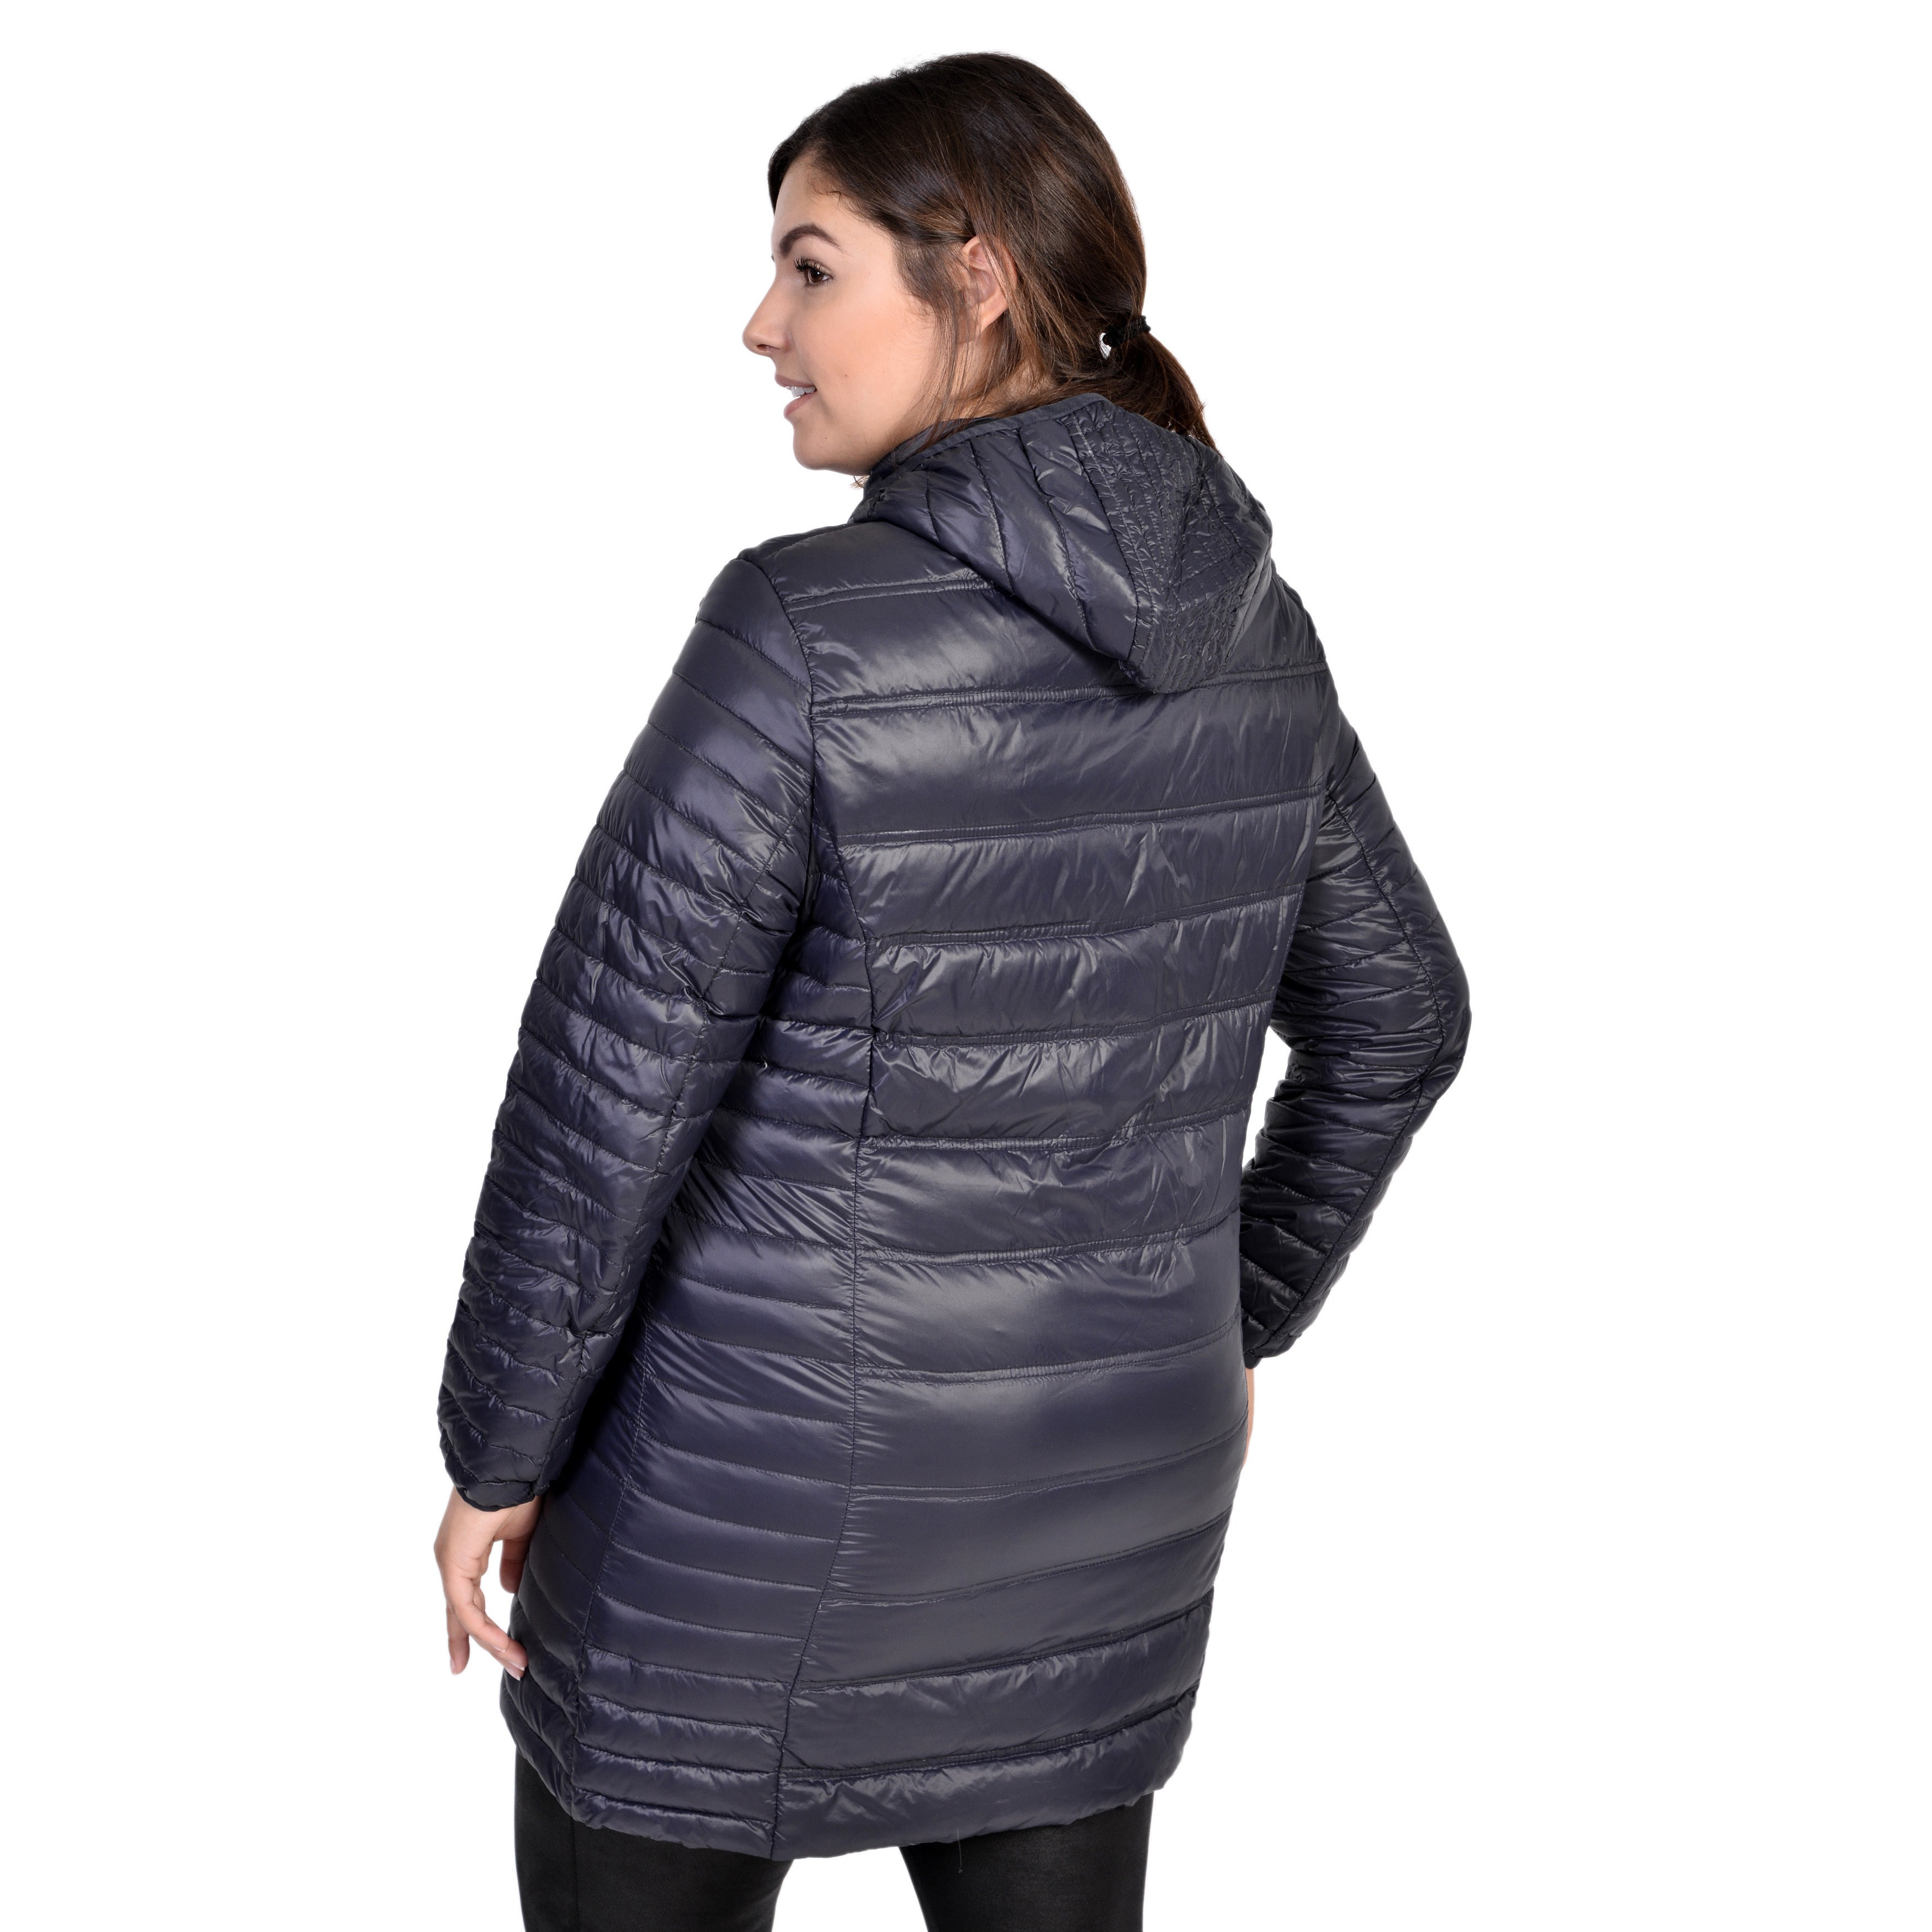 1e85da302cf Shop Packable Down Coat ( Plus Size) - On Sale - Free Shipping Today -  Overstock - 10597375